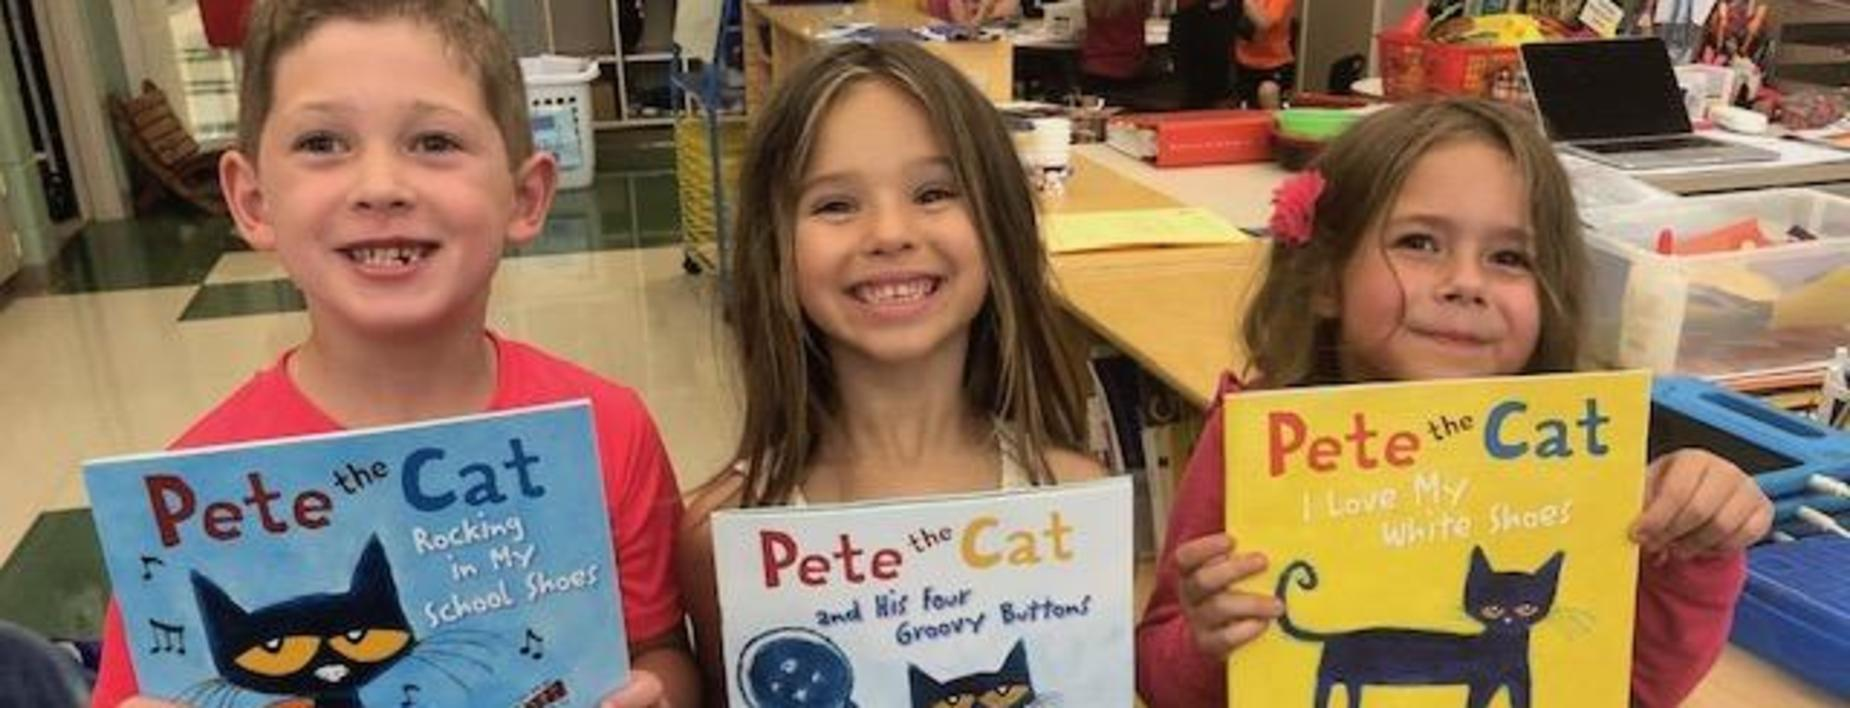 Pete the Cat in Mrs. Haab's room.